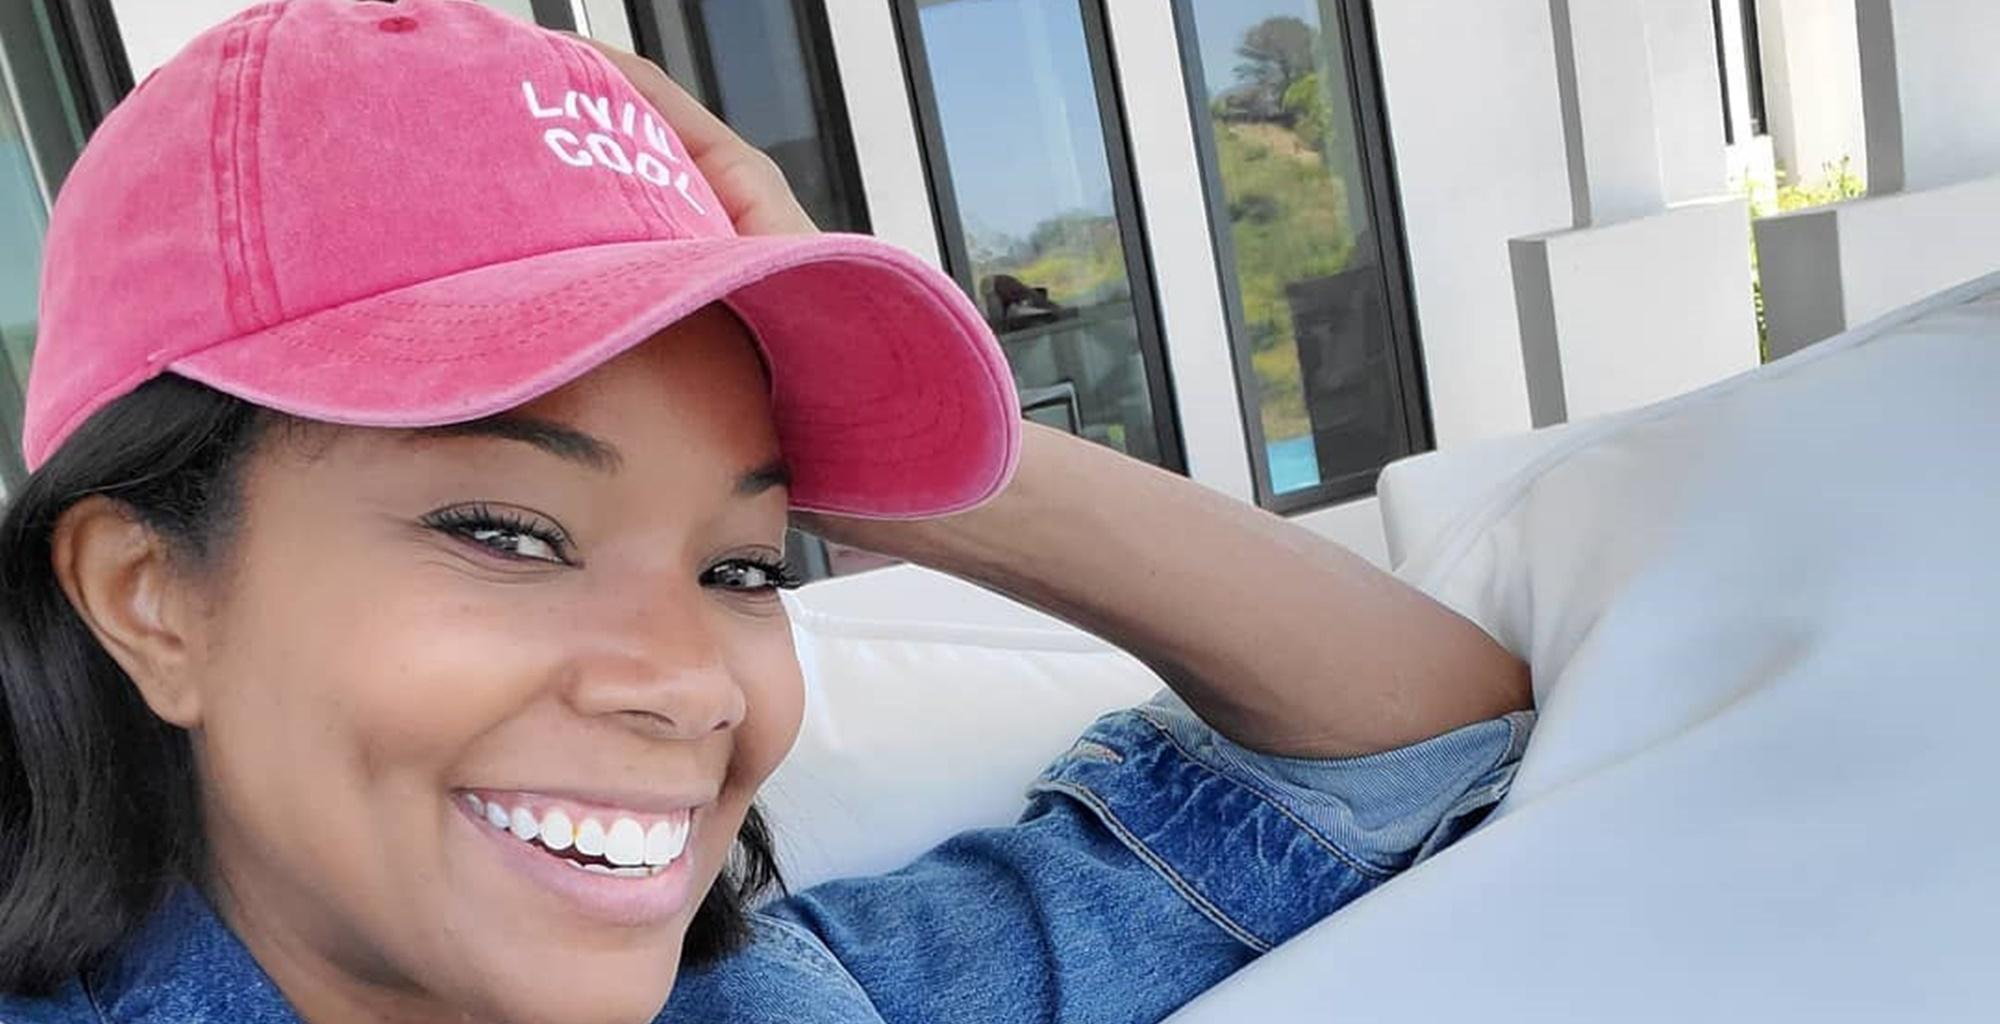 Gabrielle Union Posts A Video Of Baby Daughter Kaavia Looking 'P*ssed Off. Irritated. And Annoyed.' In Hilarious Video During Her Swimming Lesson